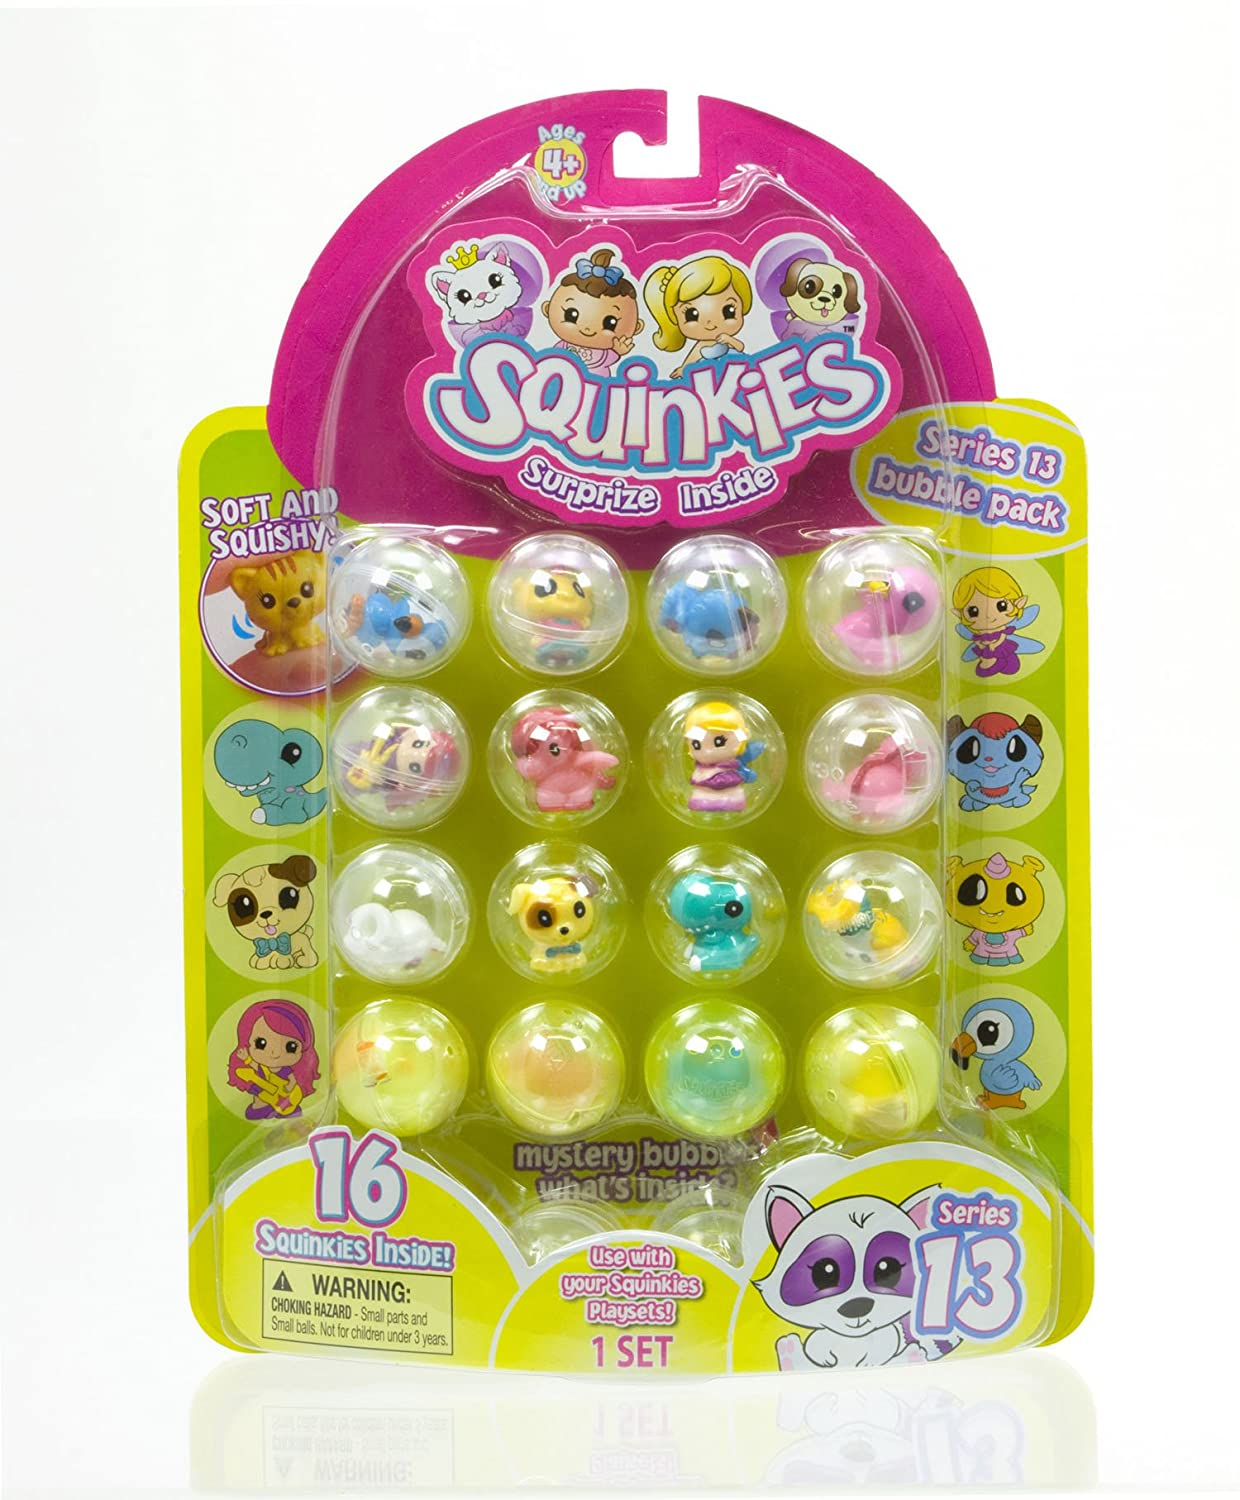 Disney-Princess-Squinkies-Set-Cinderella-Bubble-Pack-Boys-Barbie-Fuzzies thumbnail 26